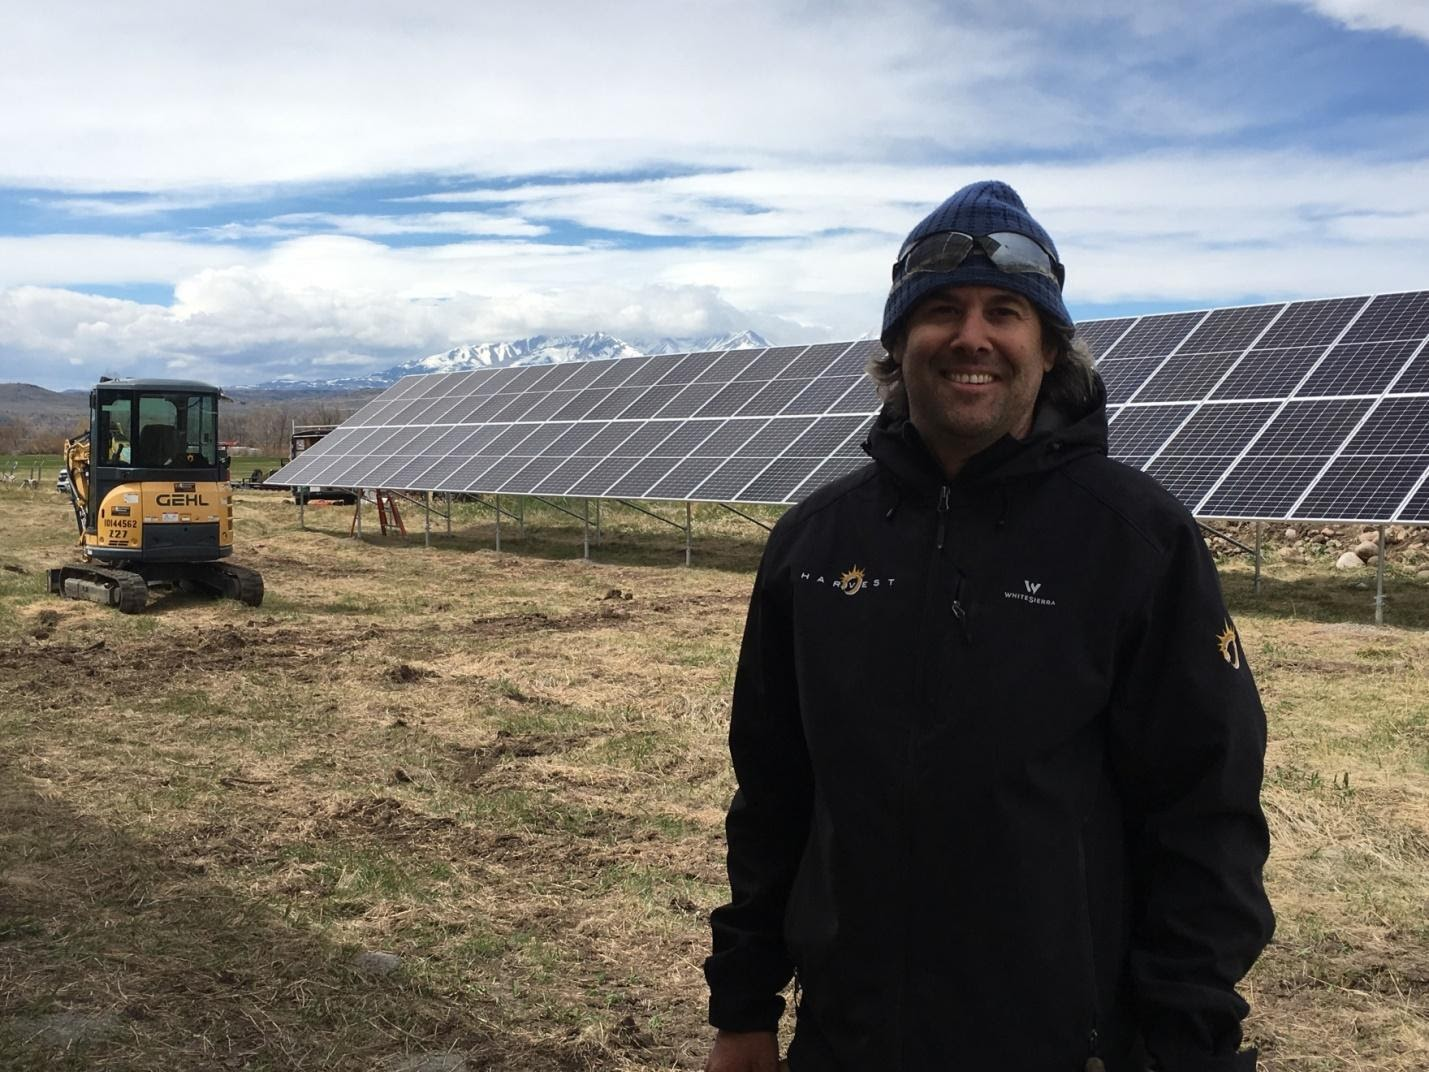 Person standing in front of solar panels